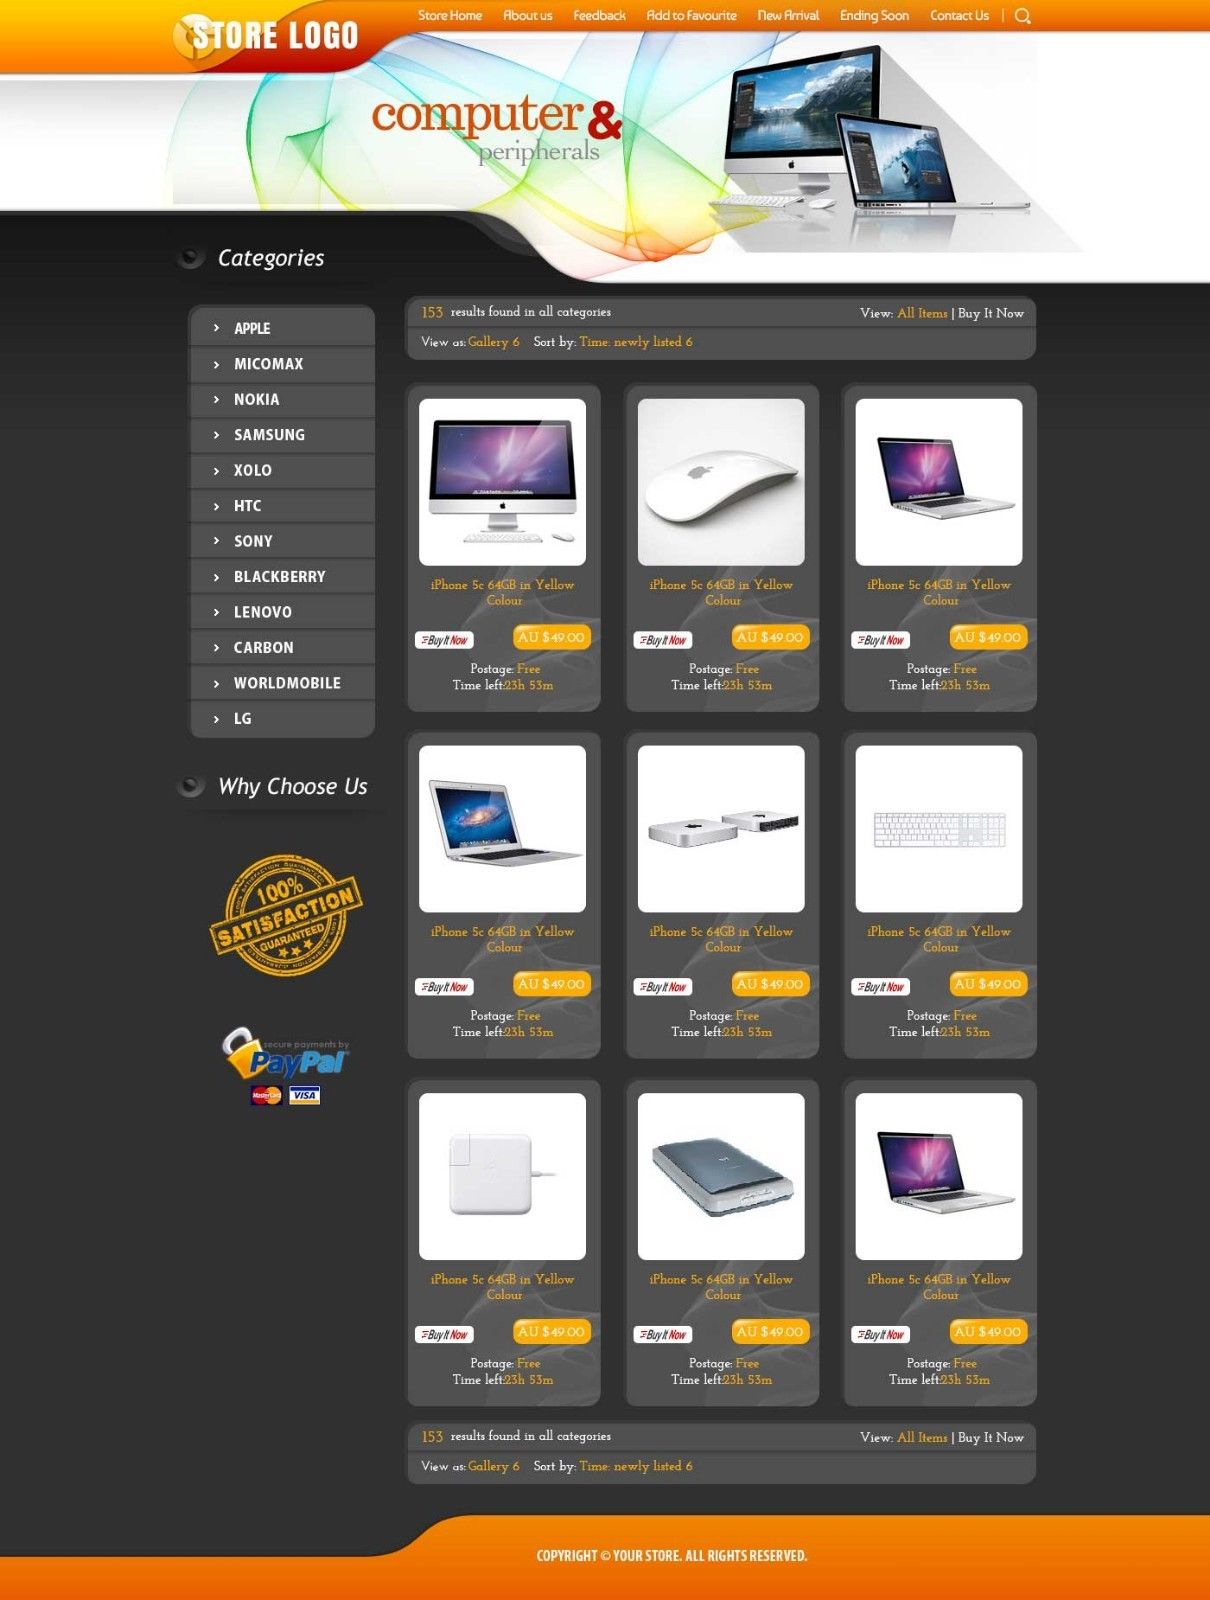 29eBay Shop Design and Listing Auction HTML Templates- Free Setup ...